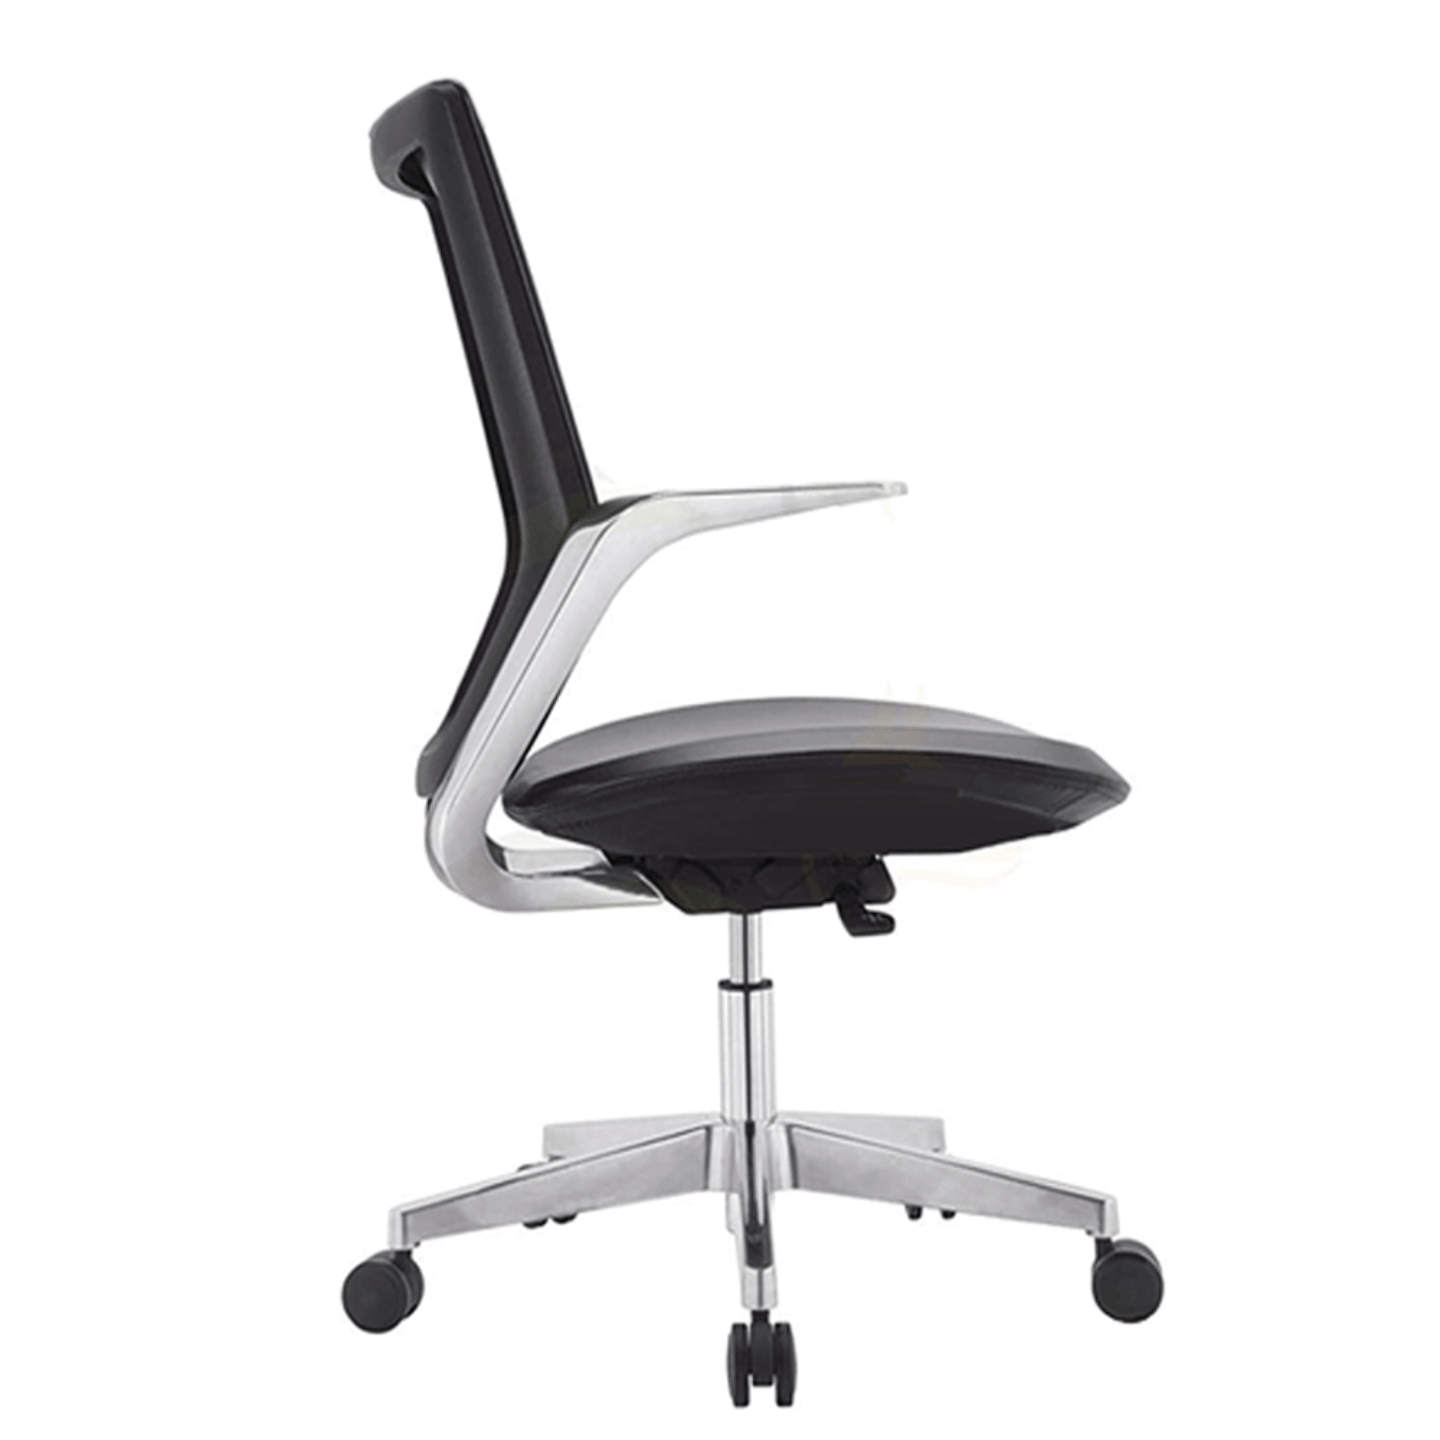 Home Office Chair F1-L MB | Ergonomic Chair | Computer Chair | Executive Chair